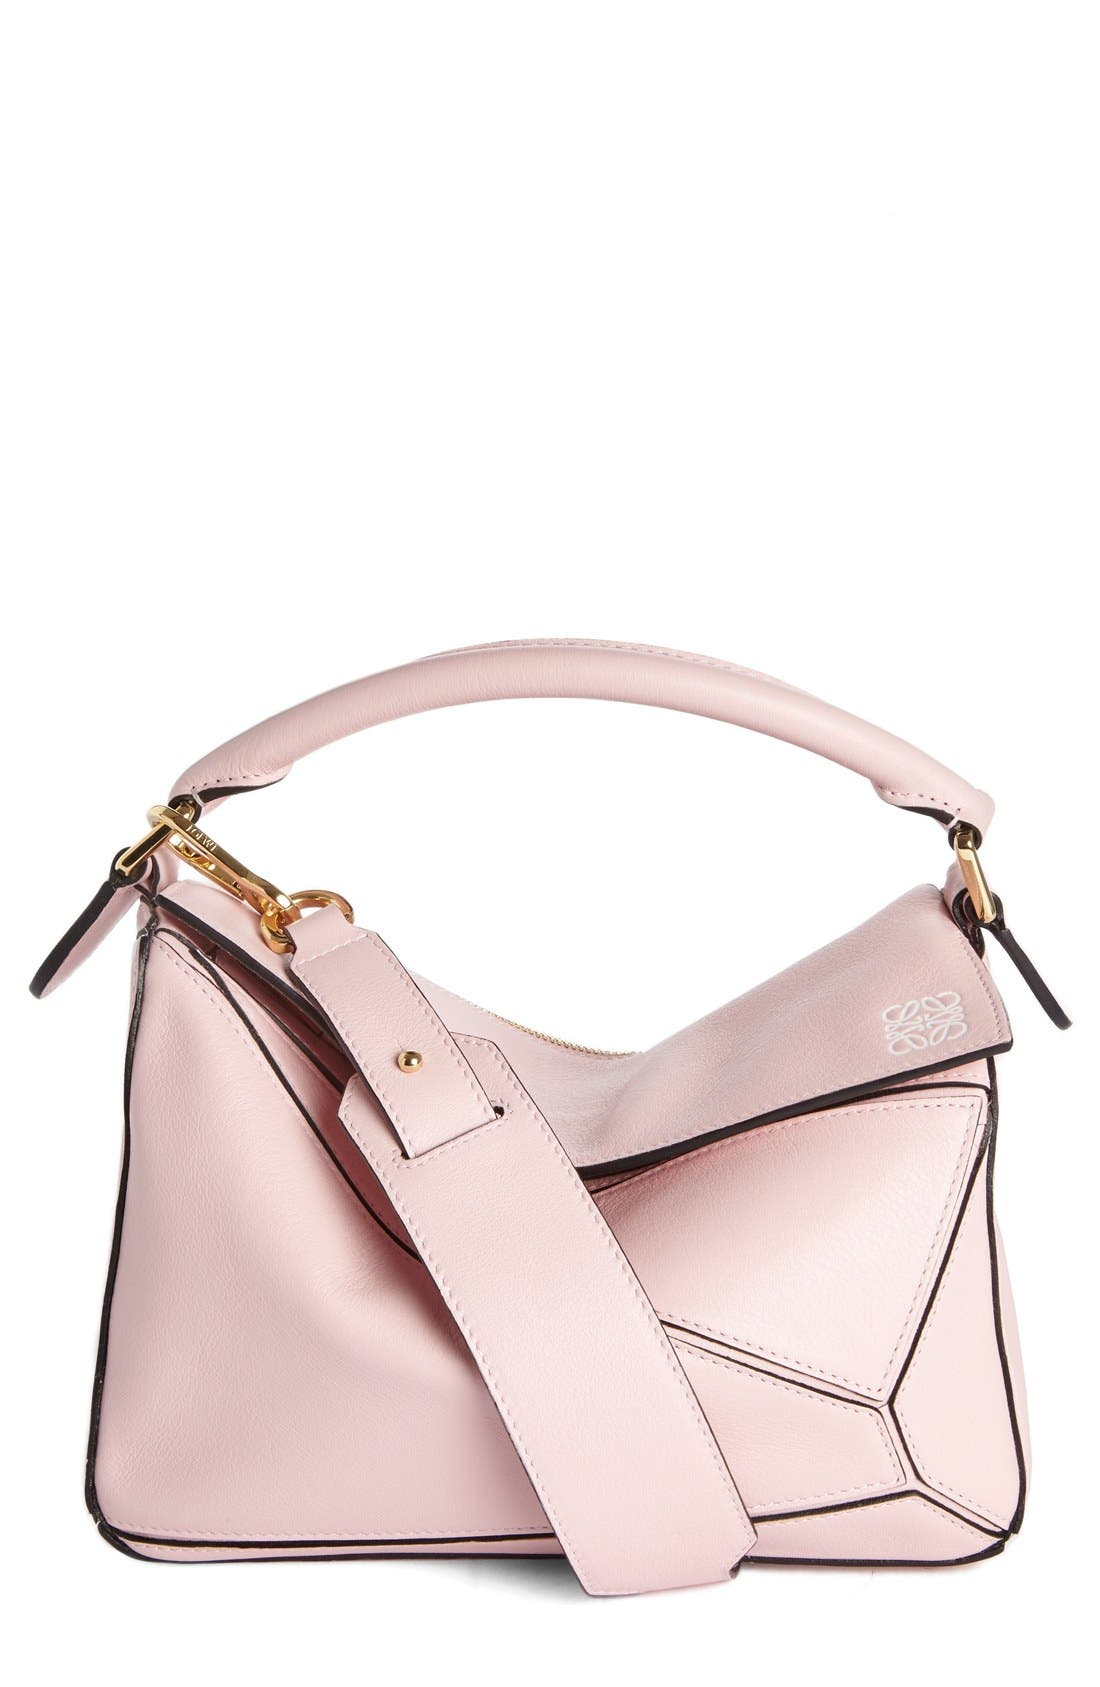 'Small Puzzle' Calfskin Leather Bag,                             Main thumbnail 7, color,